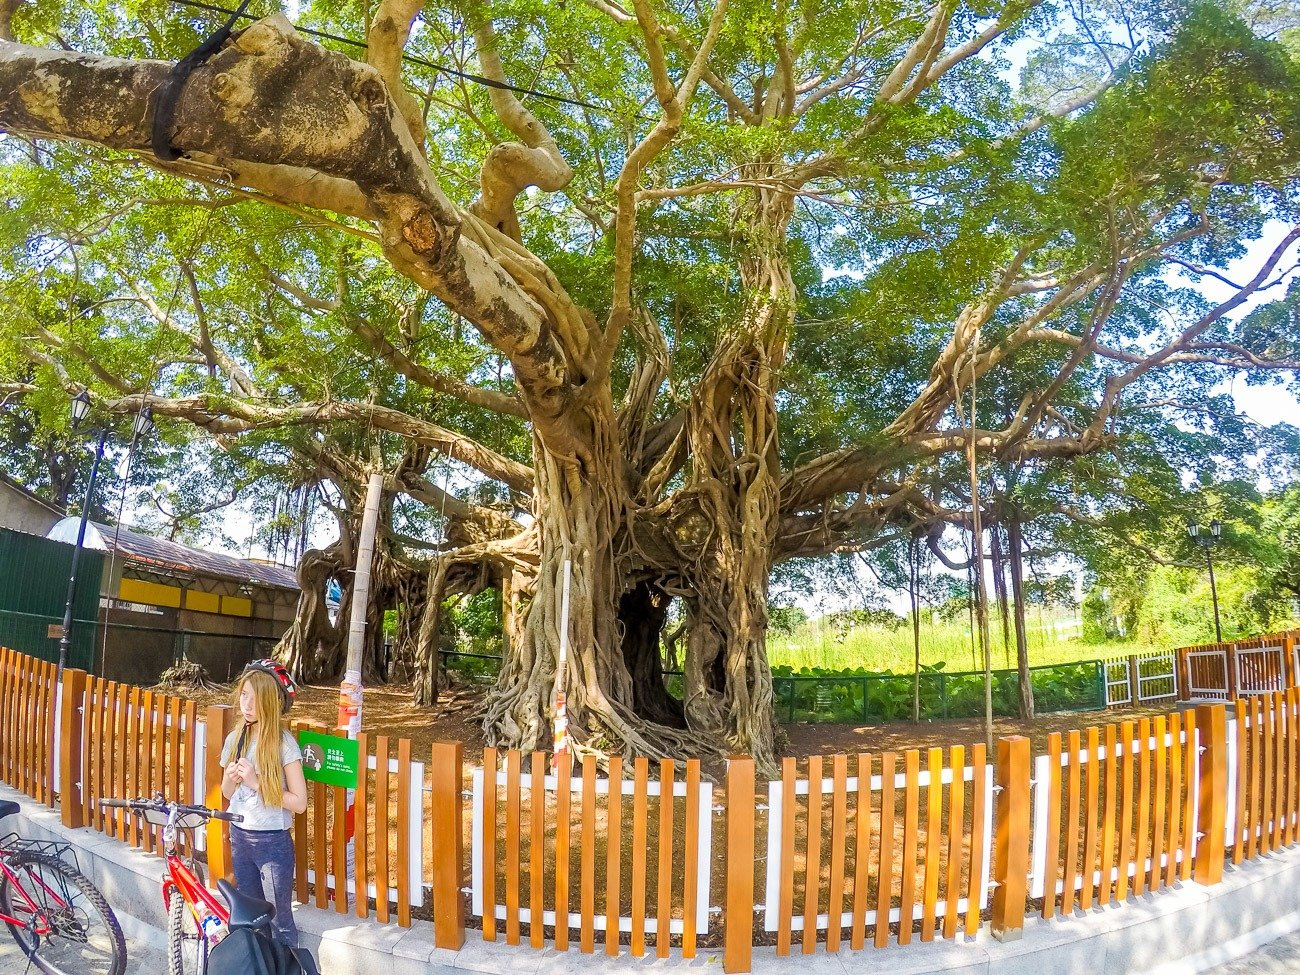 The Kam Tin Tree House is a Banyan tree that has engulfed a house that was abandoned during the Ching period.